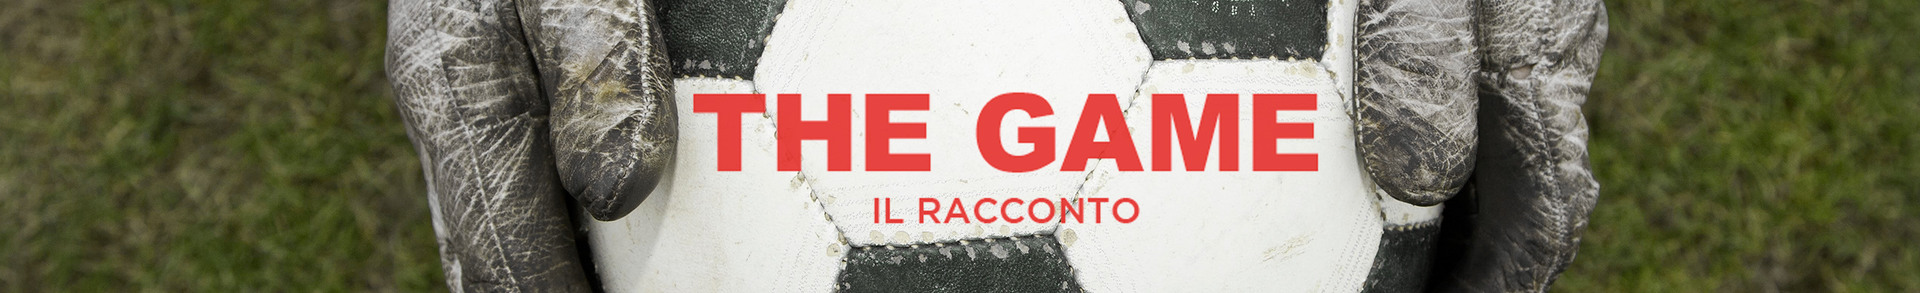 """SIENA PREVIEW FOR """"THE GAME"""" BY DANILO CORREALE – WINNER OF THE 14th EDITION OF THE ERMANNO CASOLI PRIZE"""